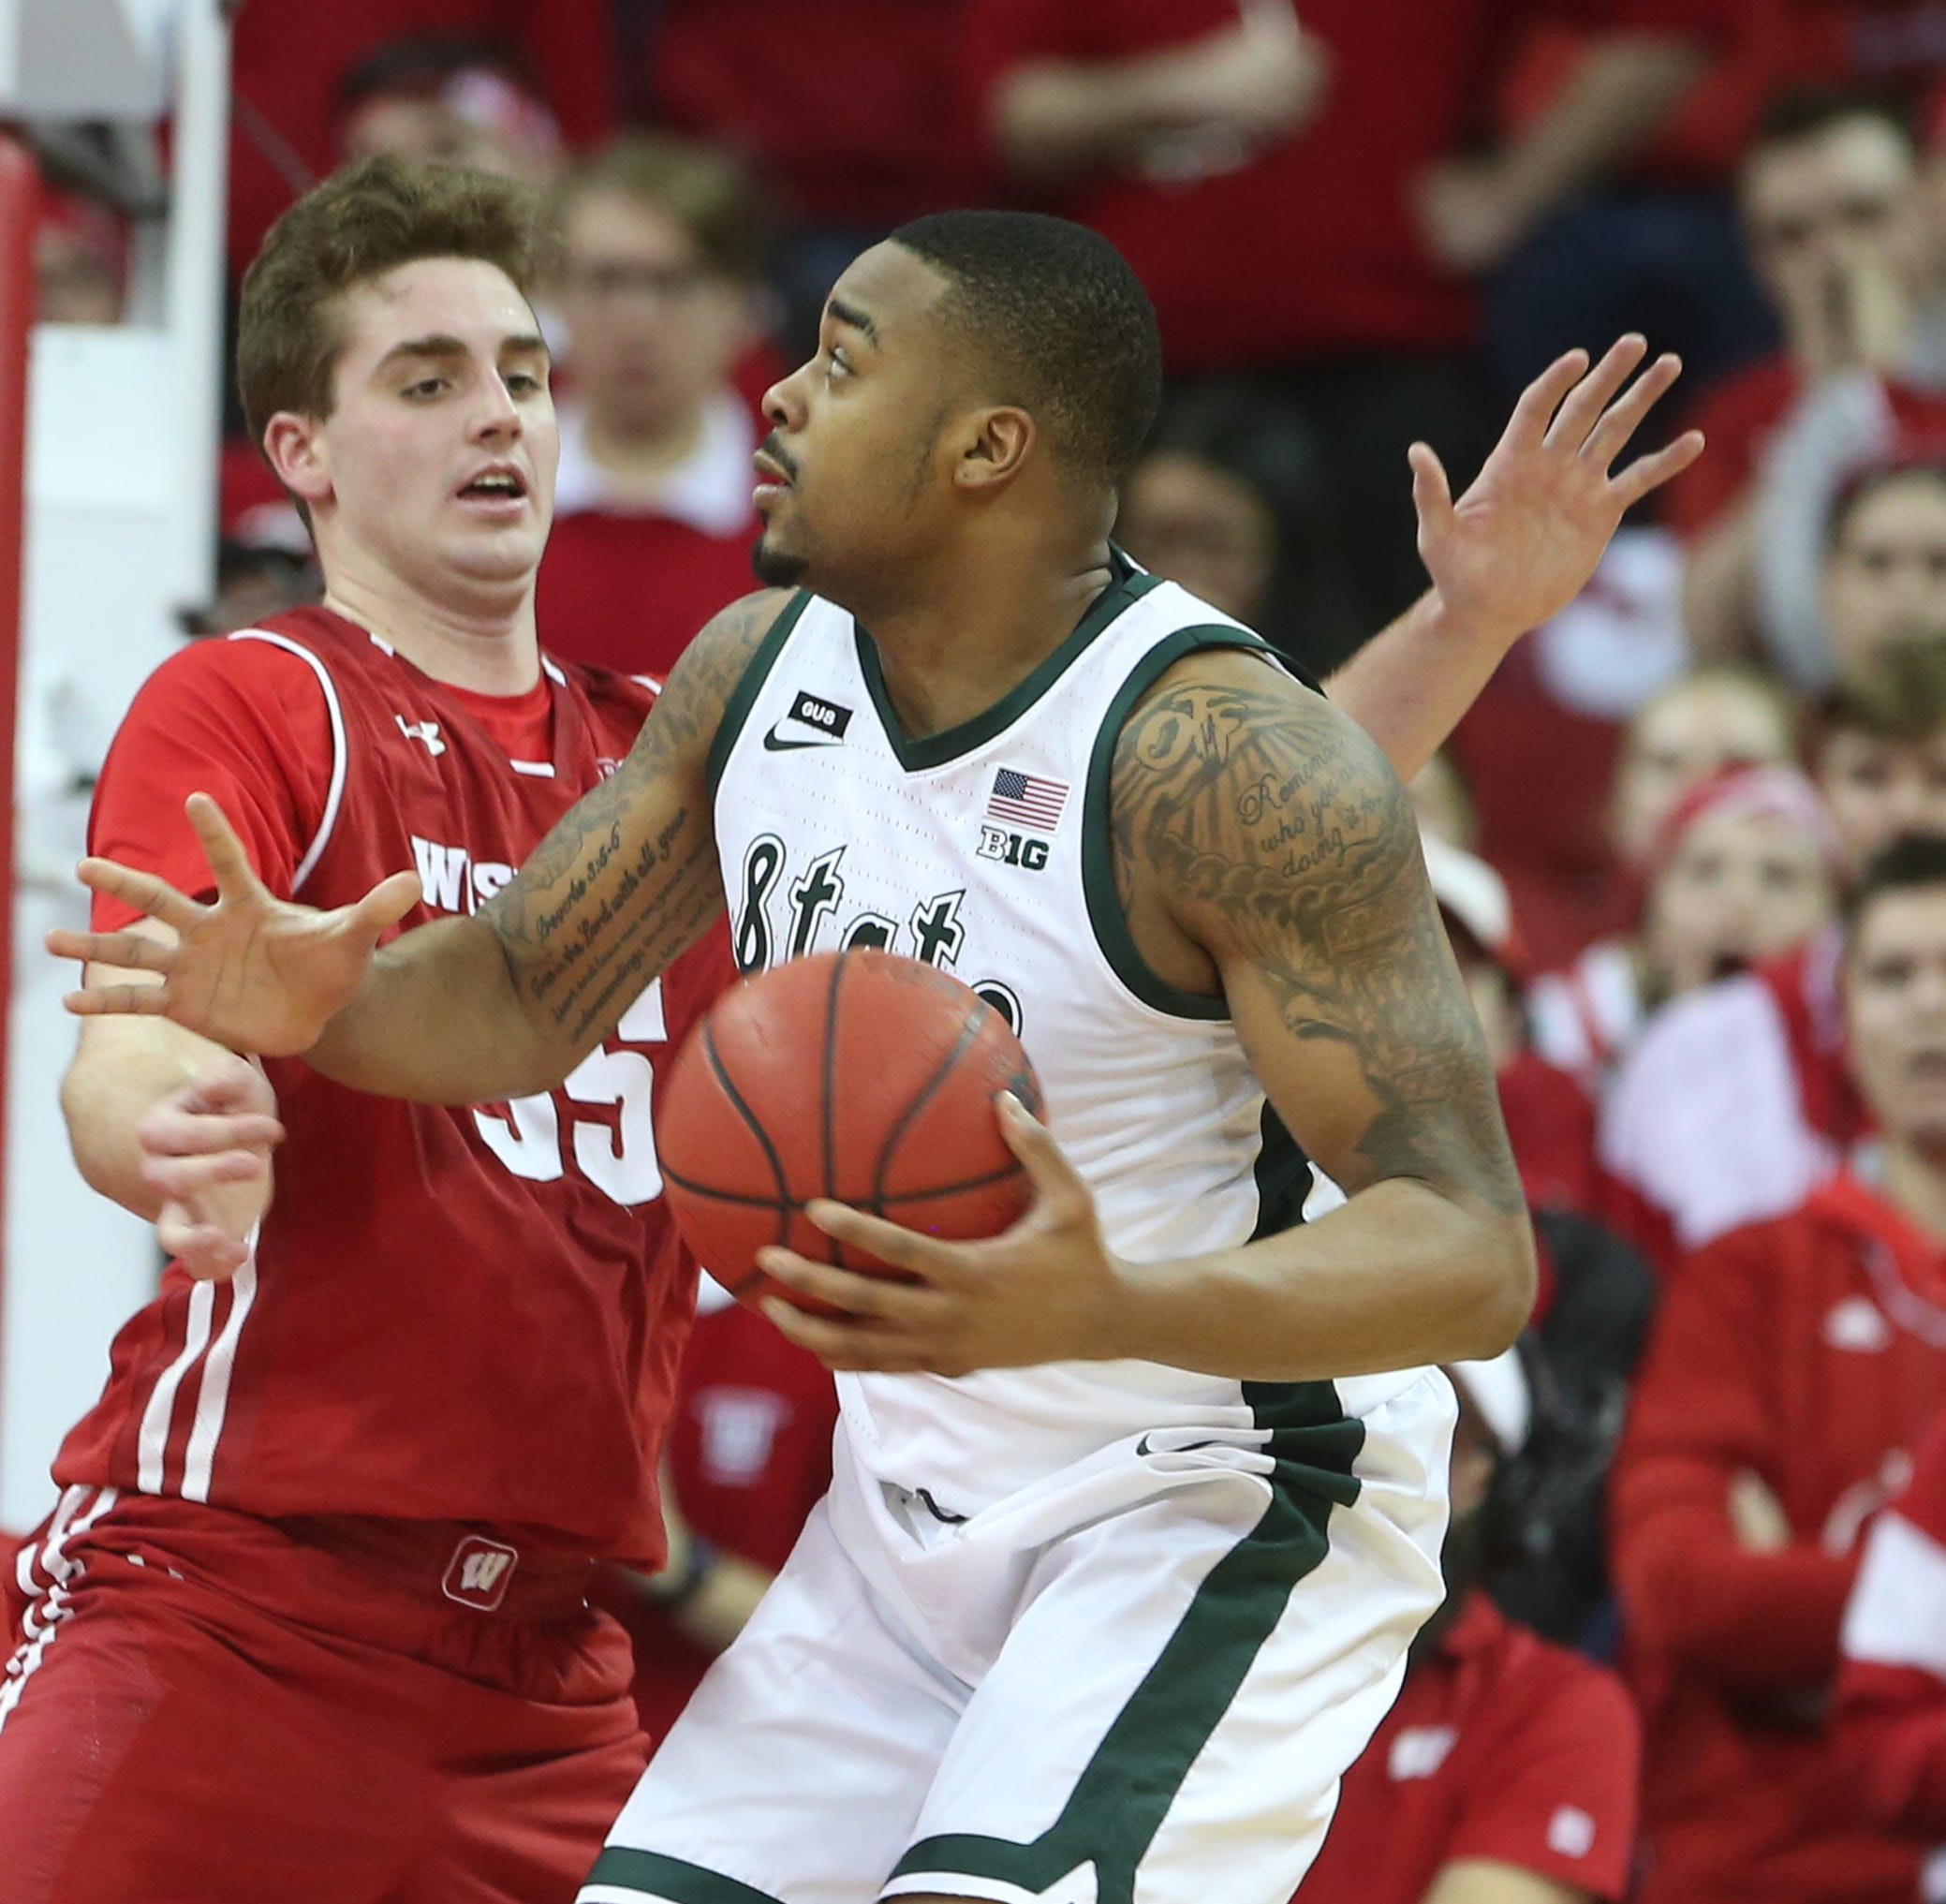 Replay: Michigan State 67, Wisconsin 55 in the Big Ten tournament semifinals